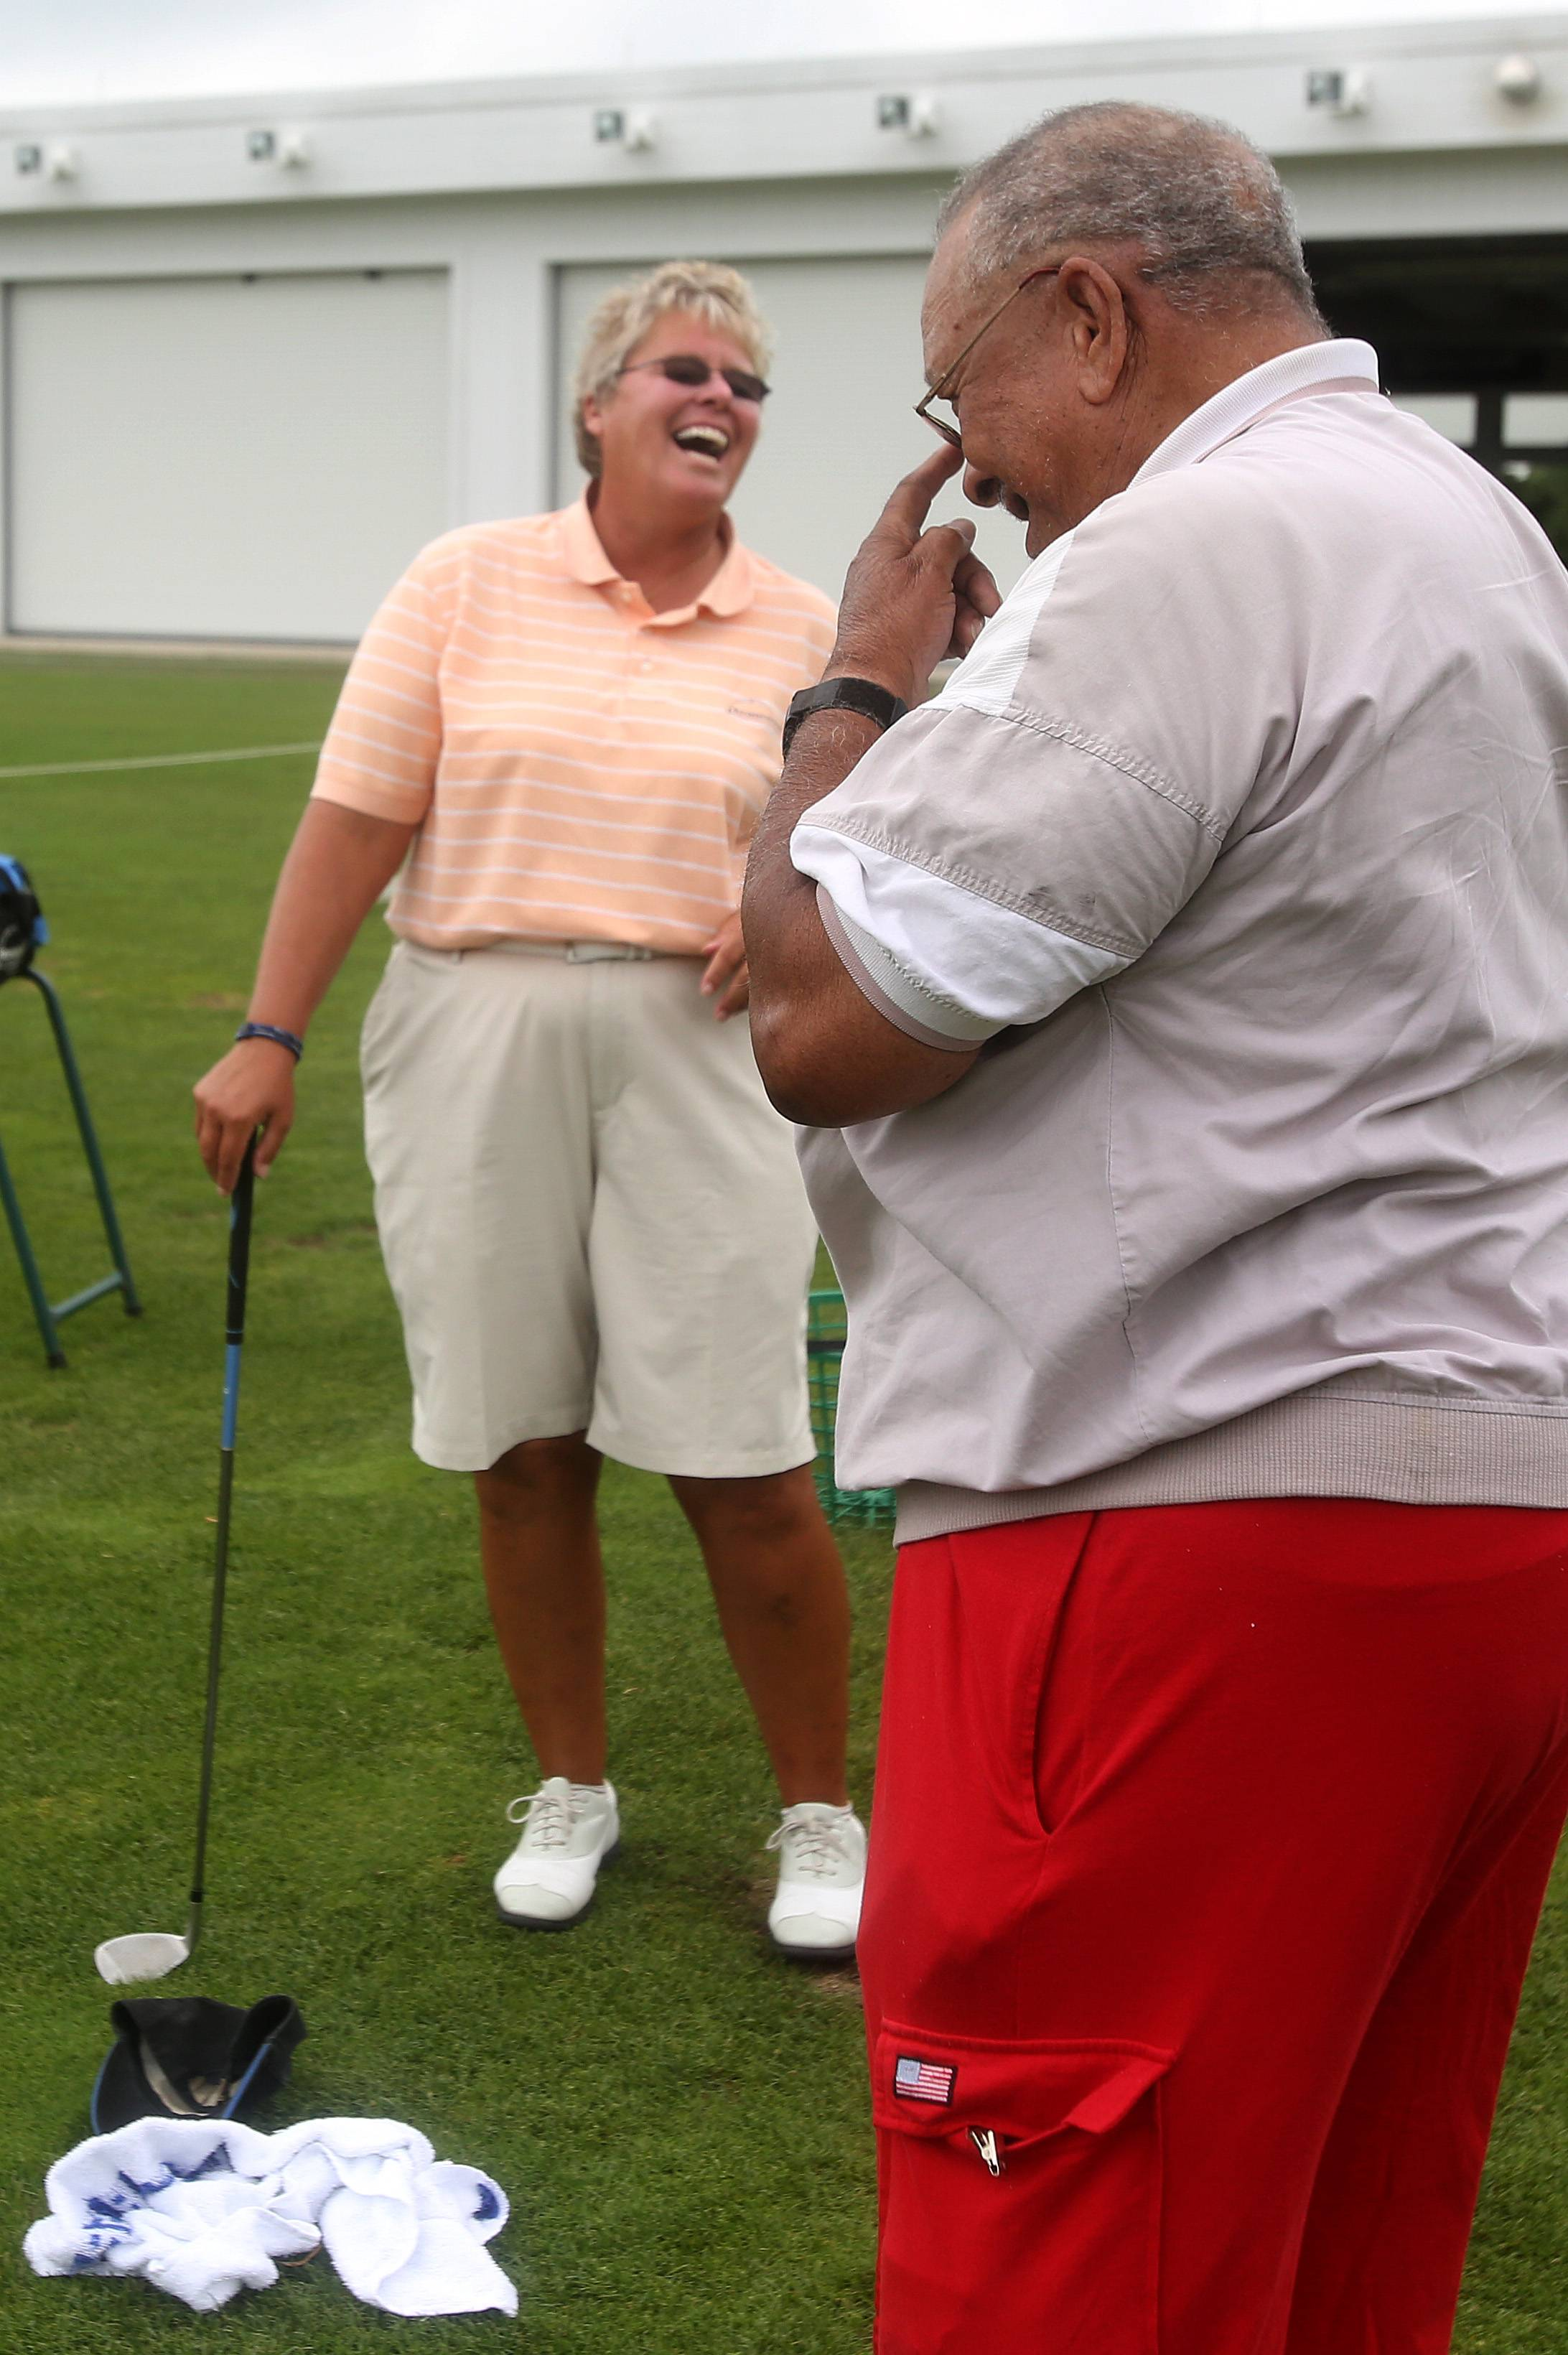 Kathy Williams, left, of RevelationGolf shares a laugh with Edward Tipton, right, at a monthly golf clinic for veterans with disabilities.